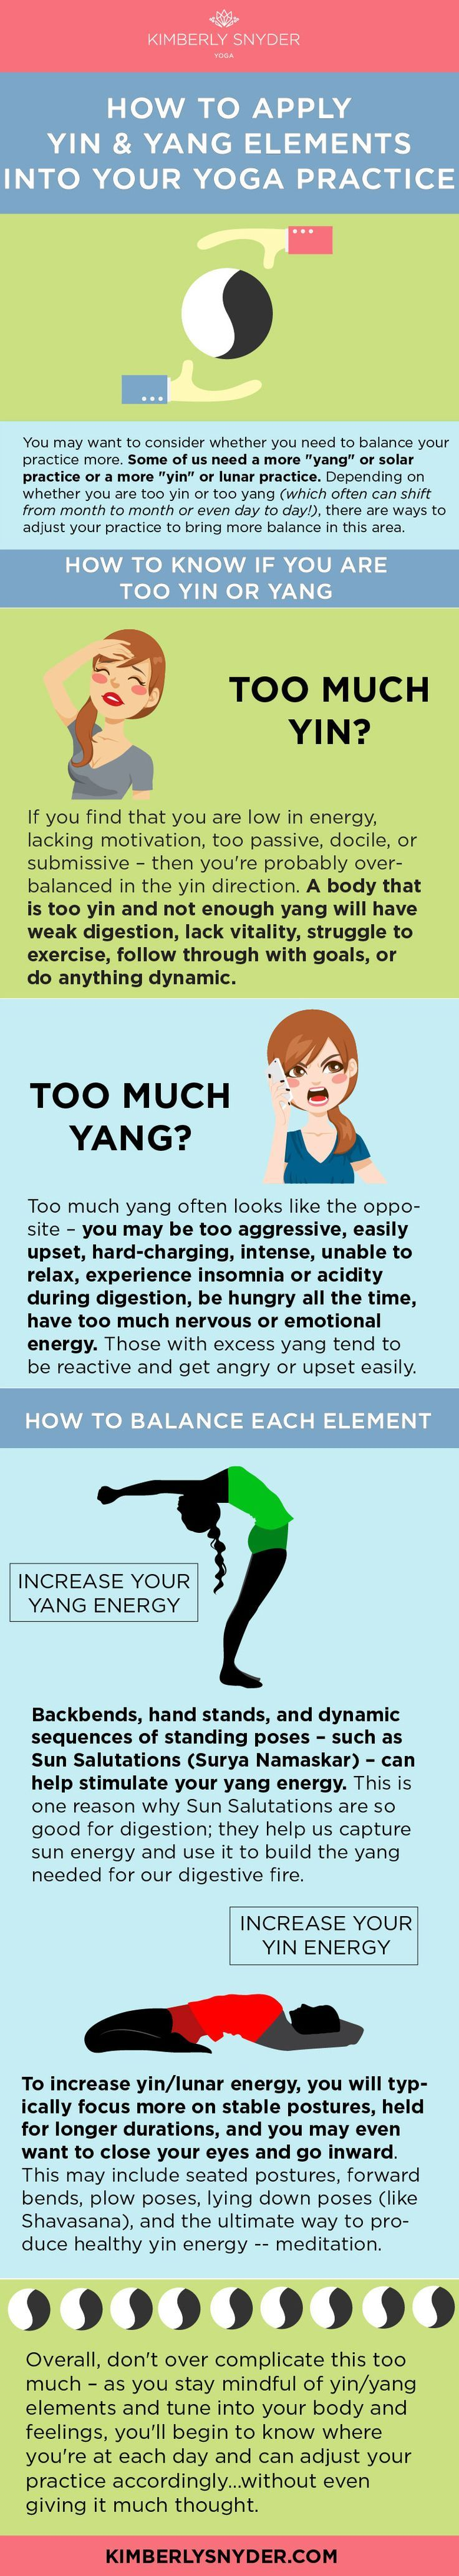 How to balance yin and yang with yoga. This is so interesting! #yoga